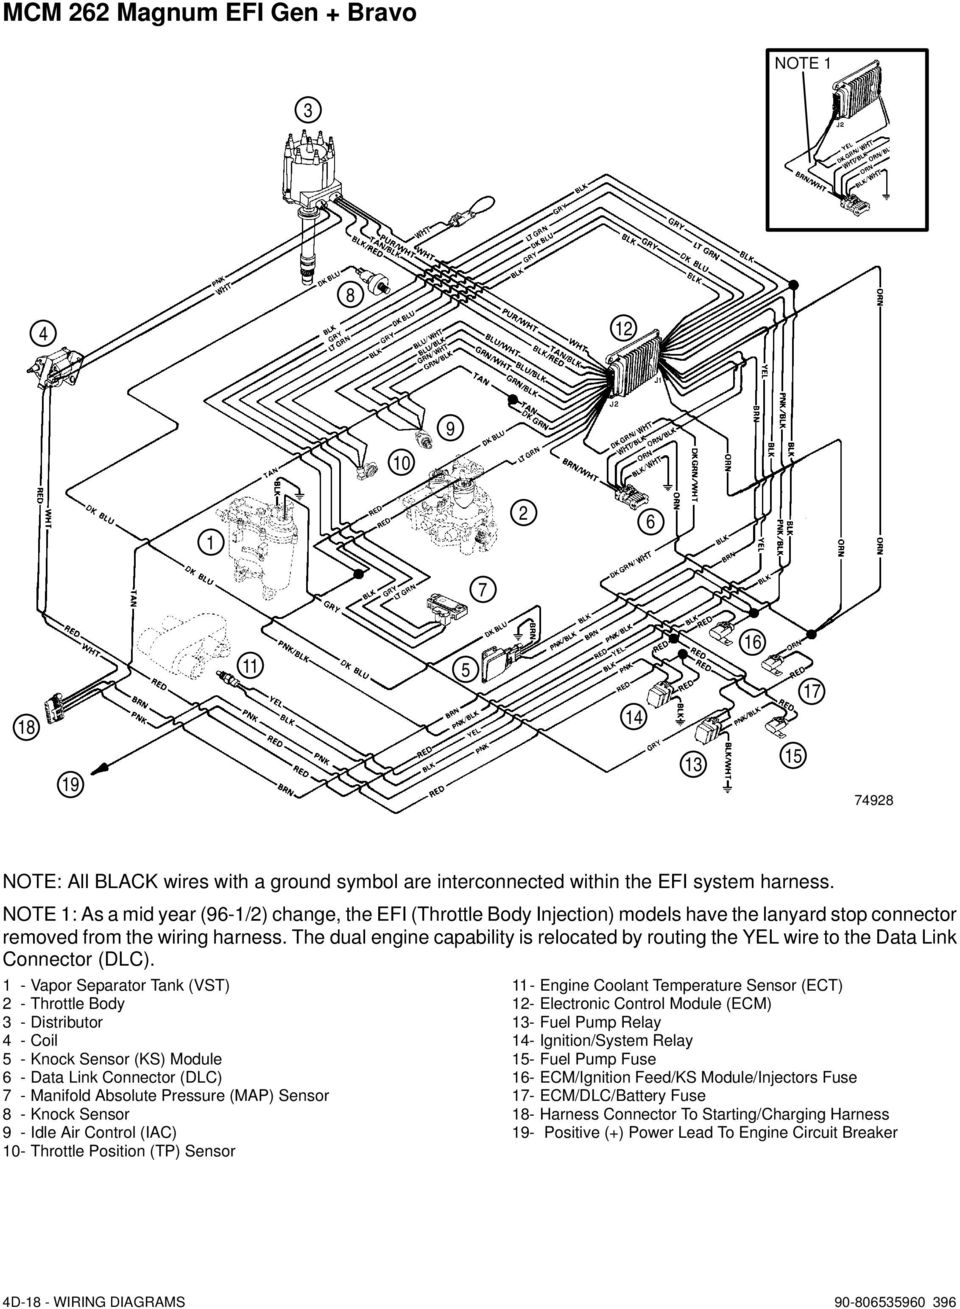 Electrical Systems Wiring Diagrams Pdf Router The Dual Engine Capability Is Relocated By Routing Ye Wire To Data Ink Onnector